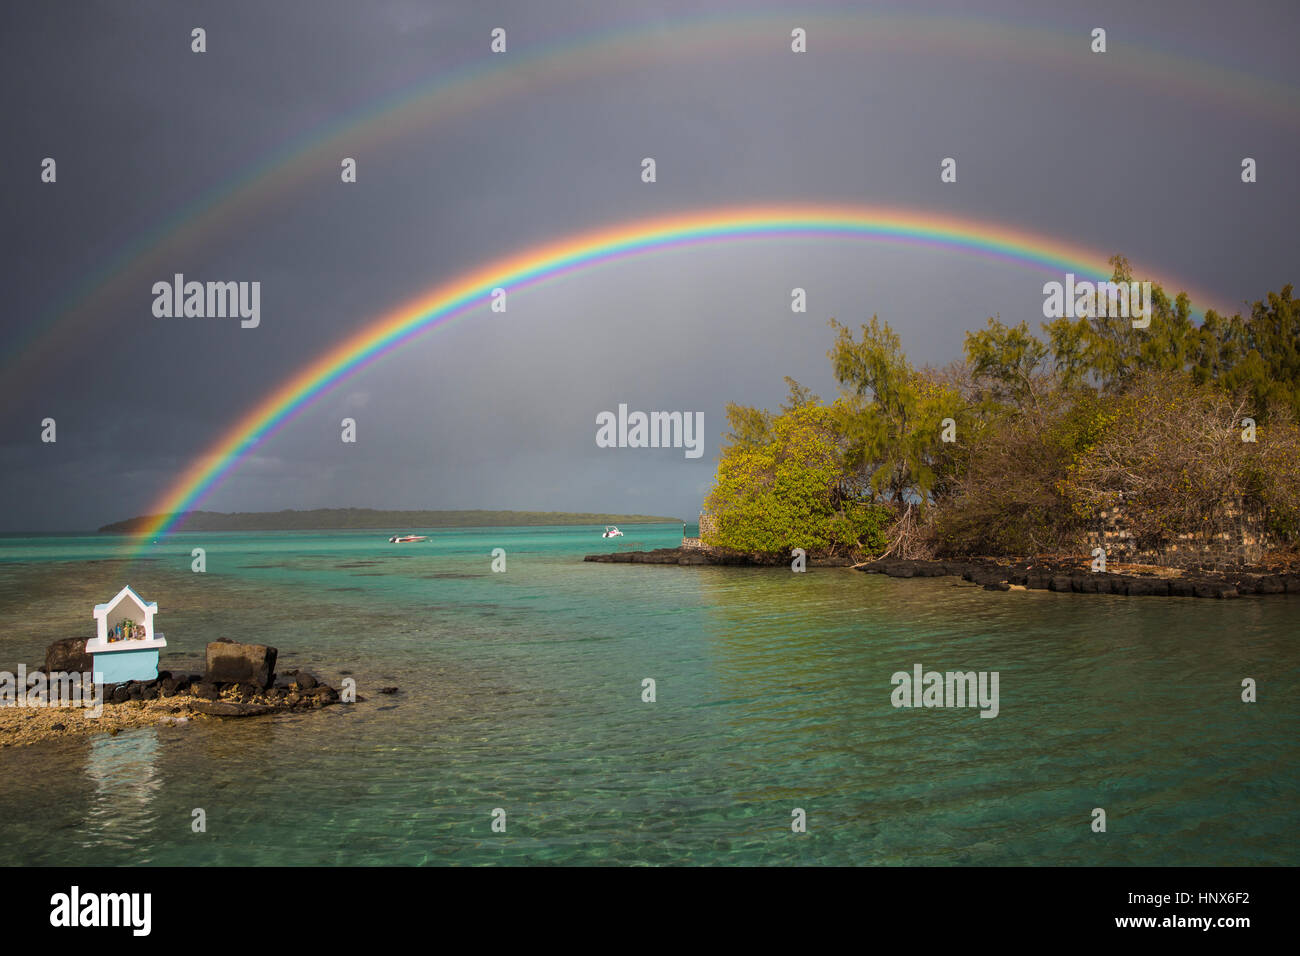 Rainbows over water, Pointe d'Esny, Mauritius - Stock Image